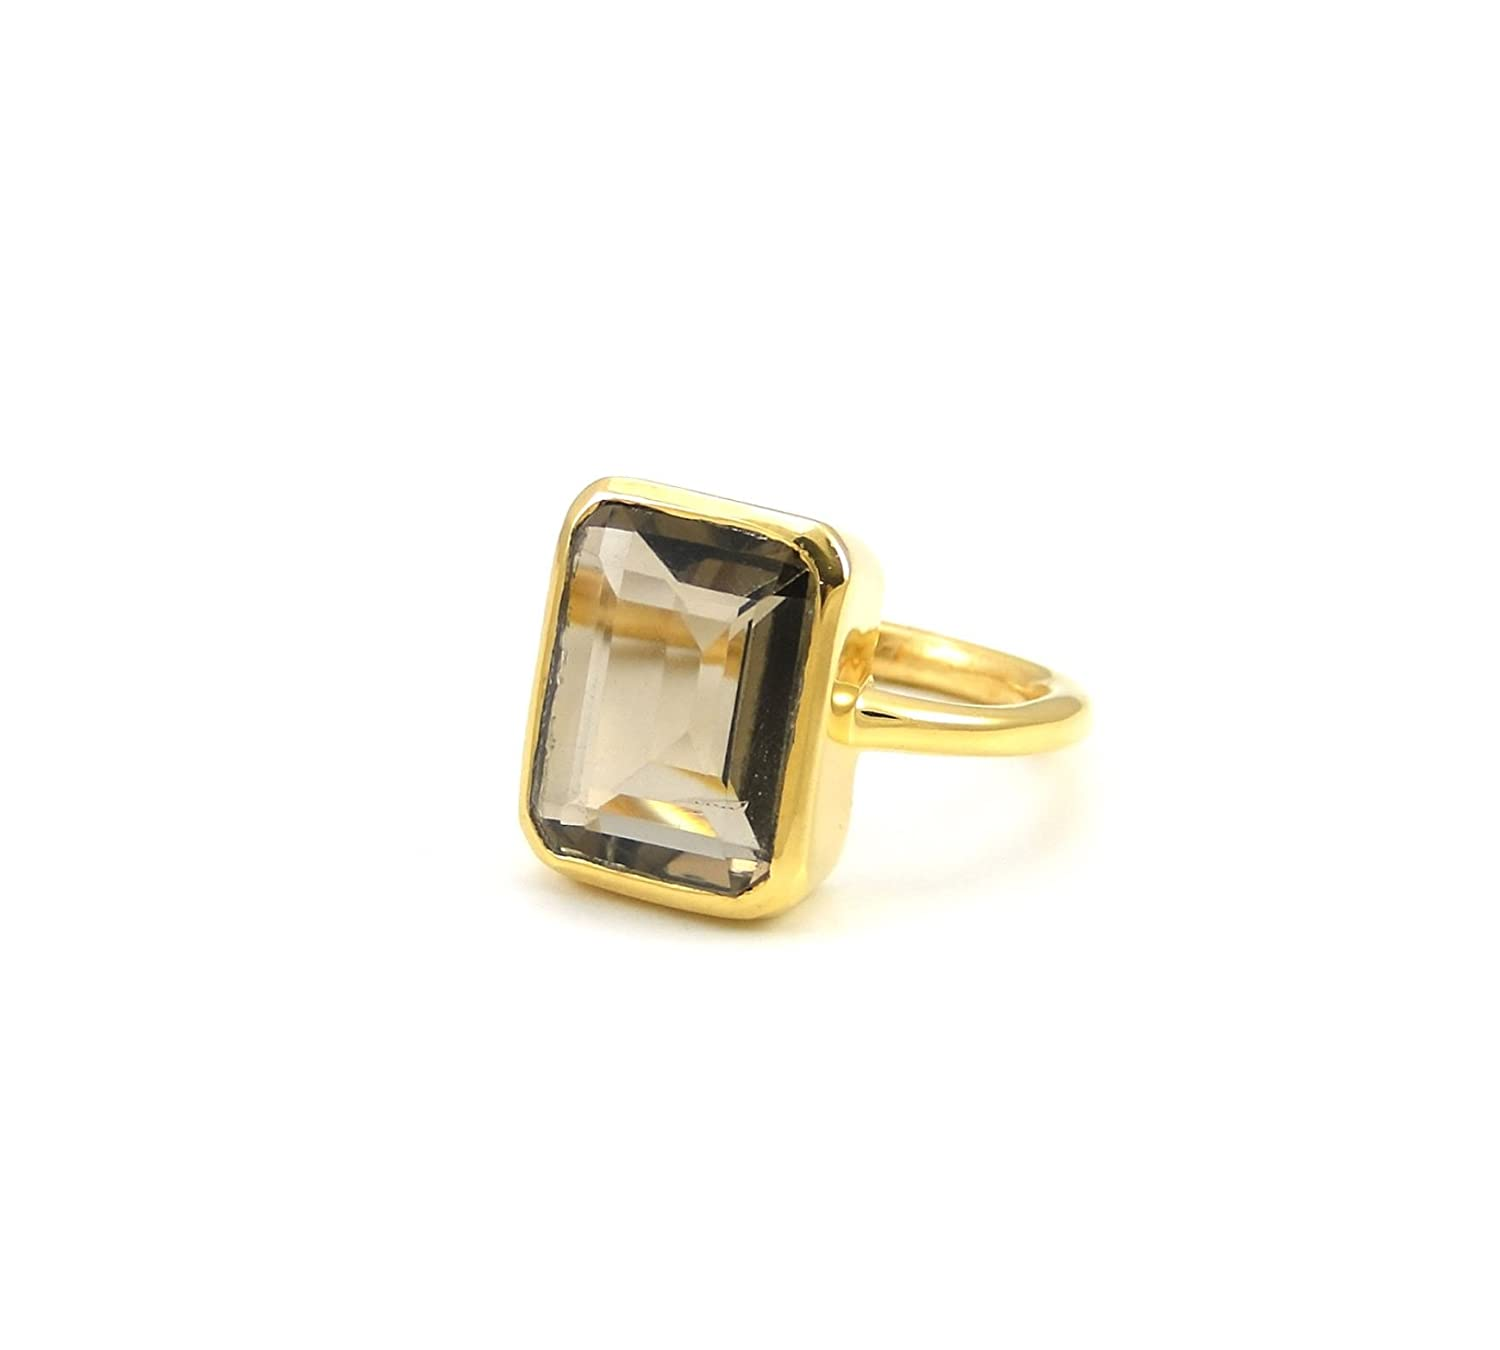 SPARKLER JEWELS Smoky Quartz,10x14mm Rectangle,925 Sterling Silver Rings,Stylish Rings,Gemstone Jewelry,Promise Rings,Moms Gift